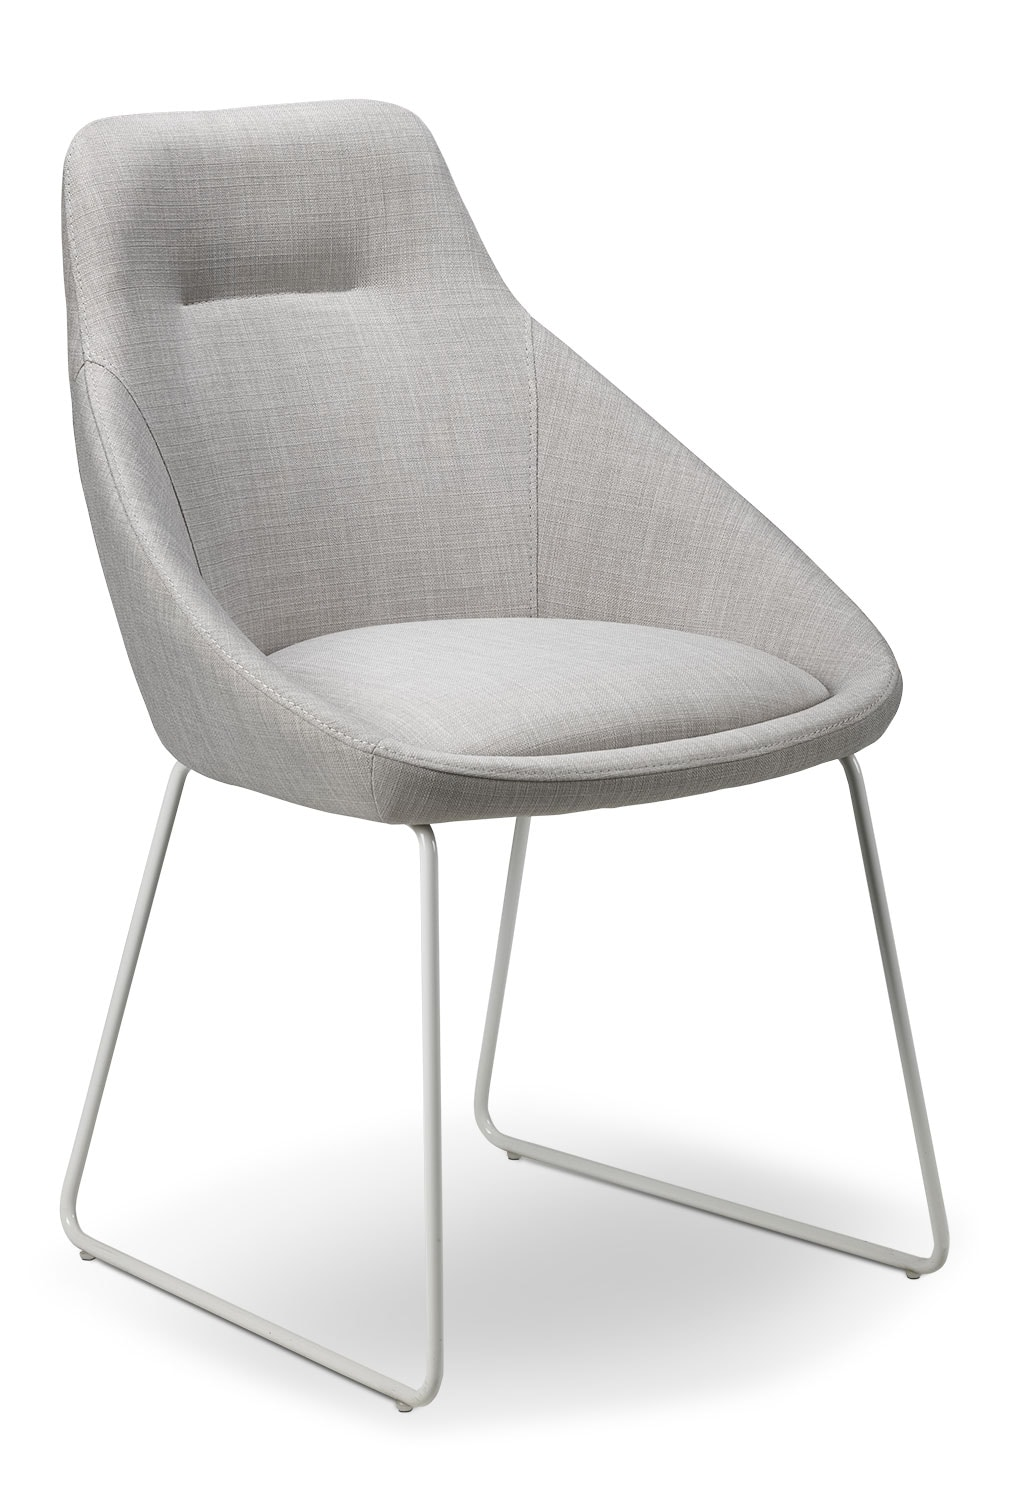 Sunshine Chair - Grey